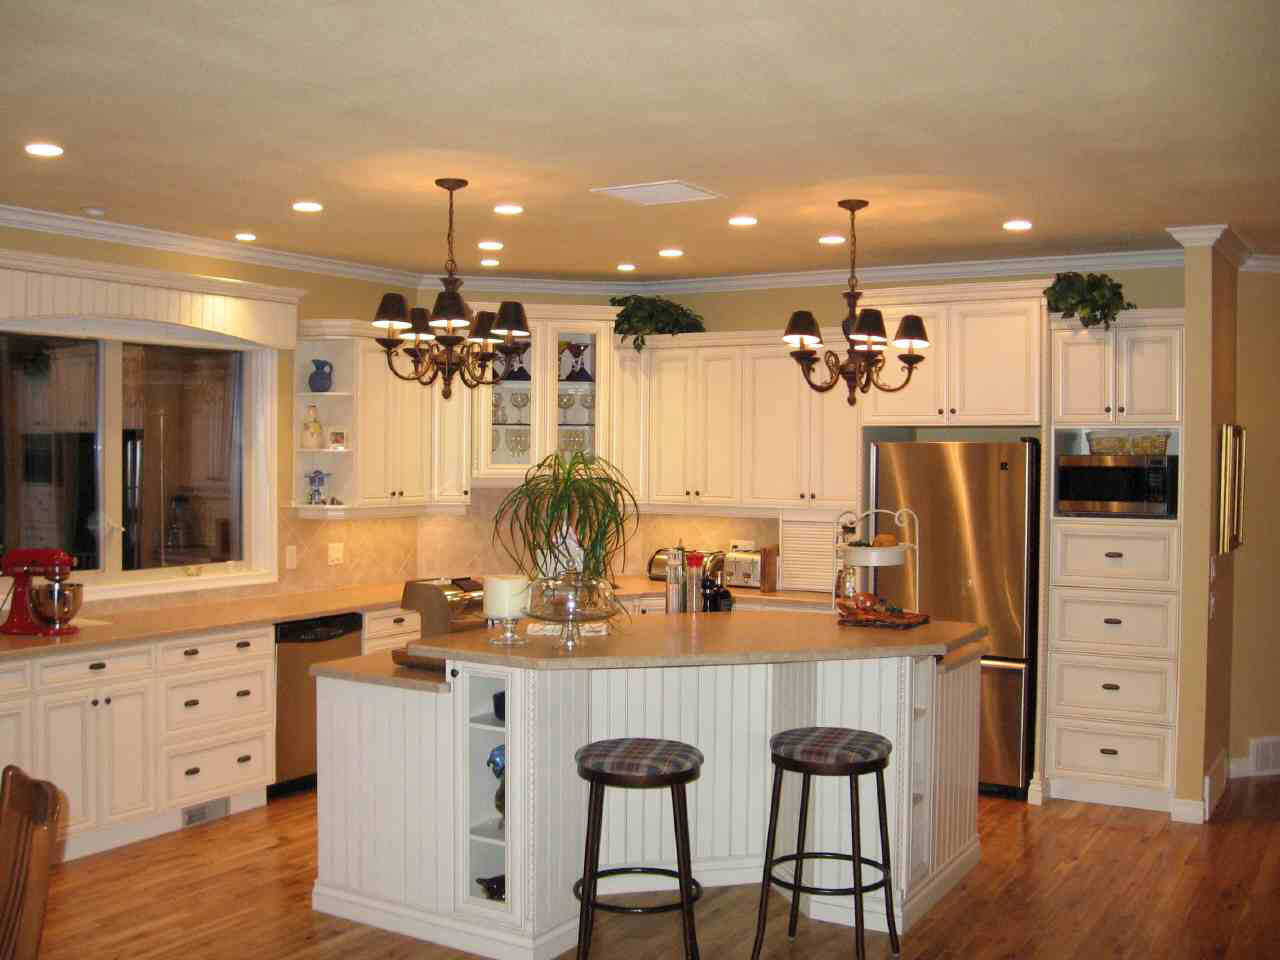 Mobile kitchen island with seating photo - 2